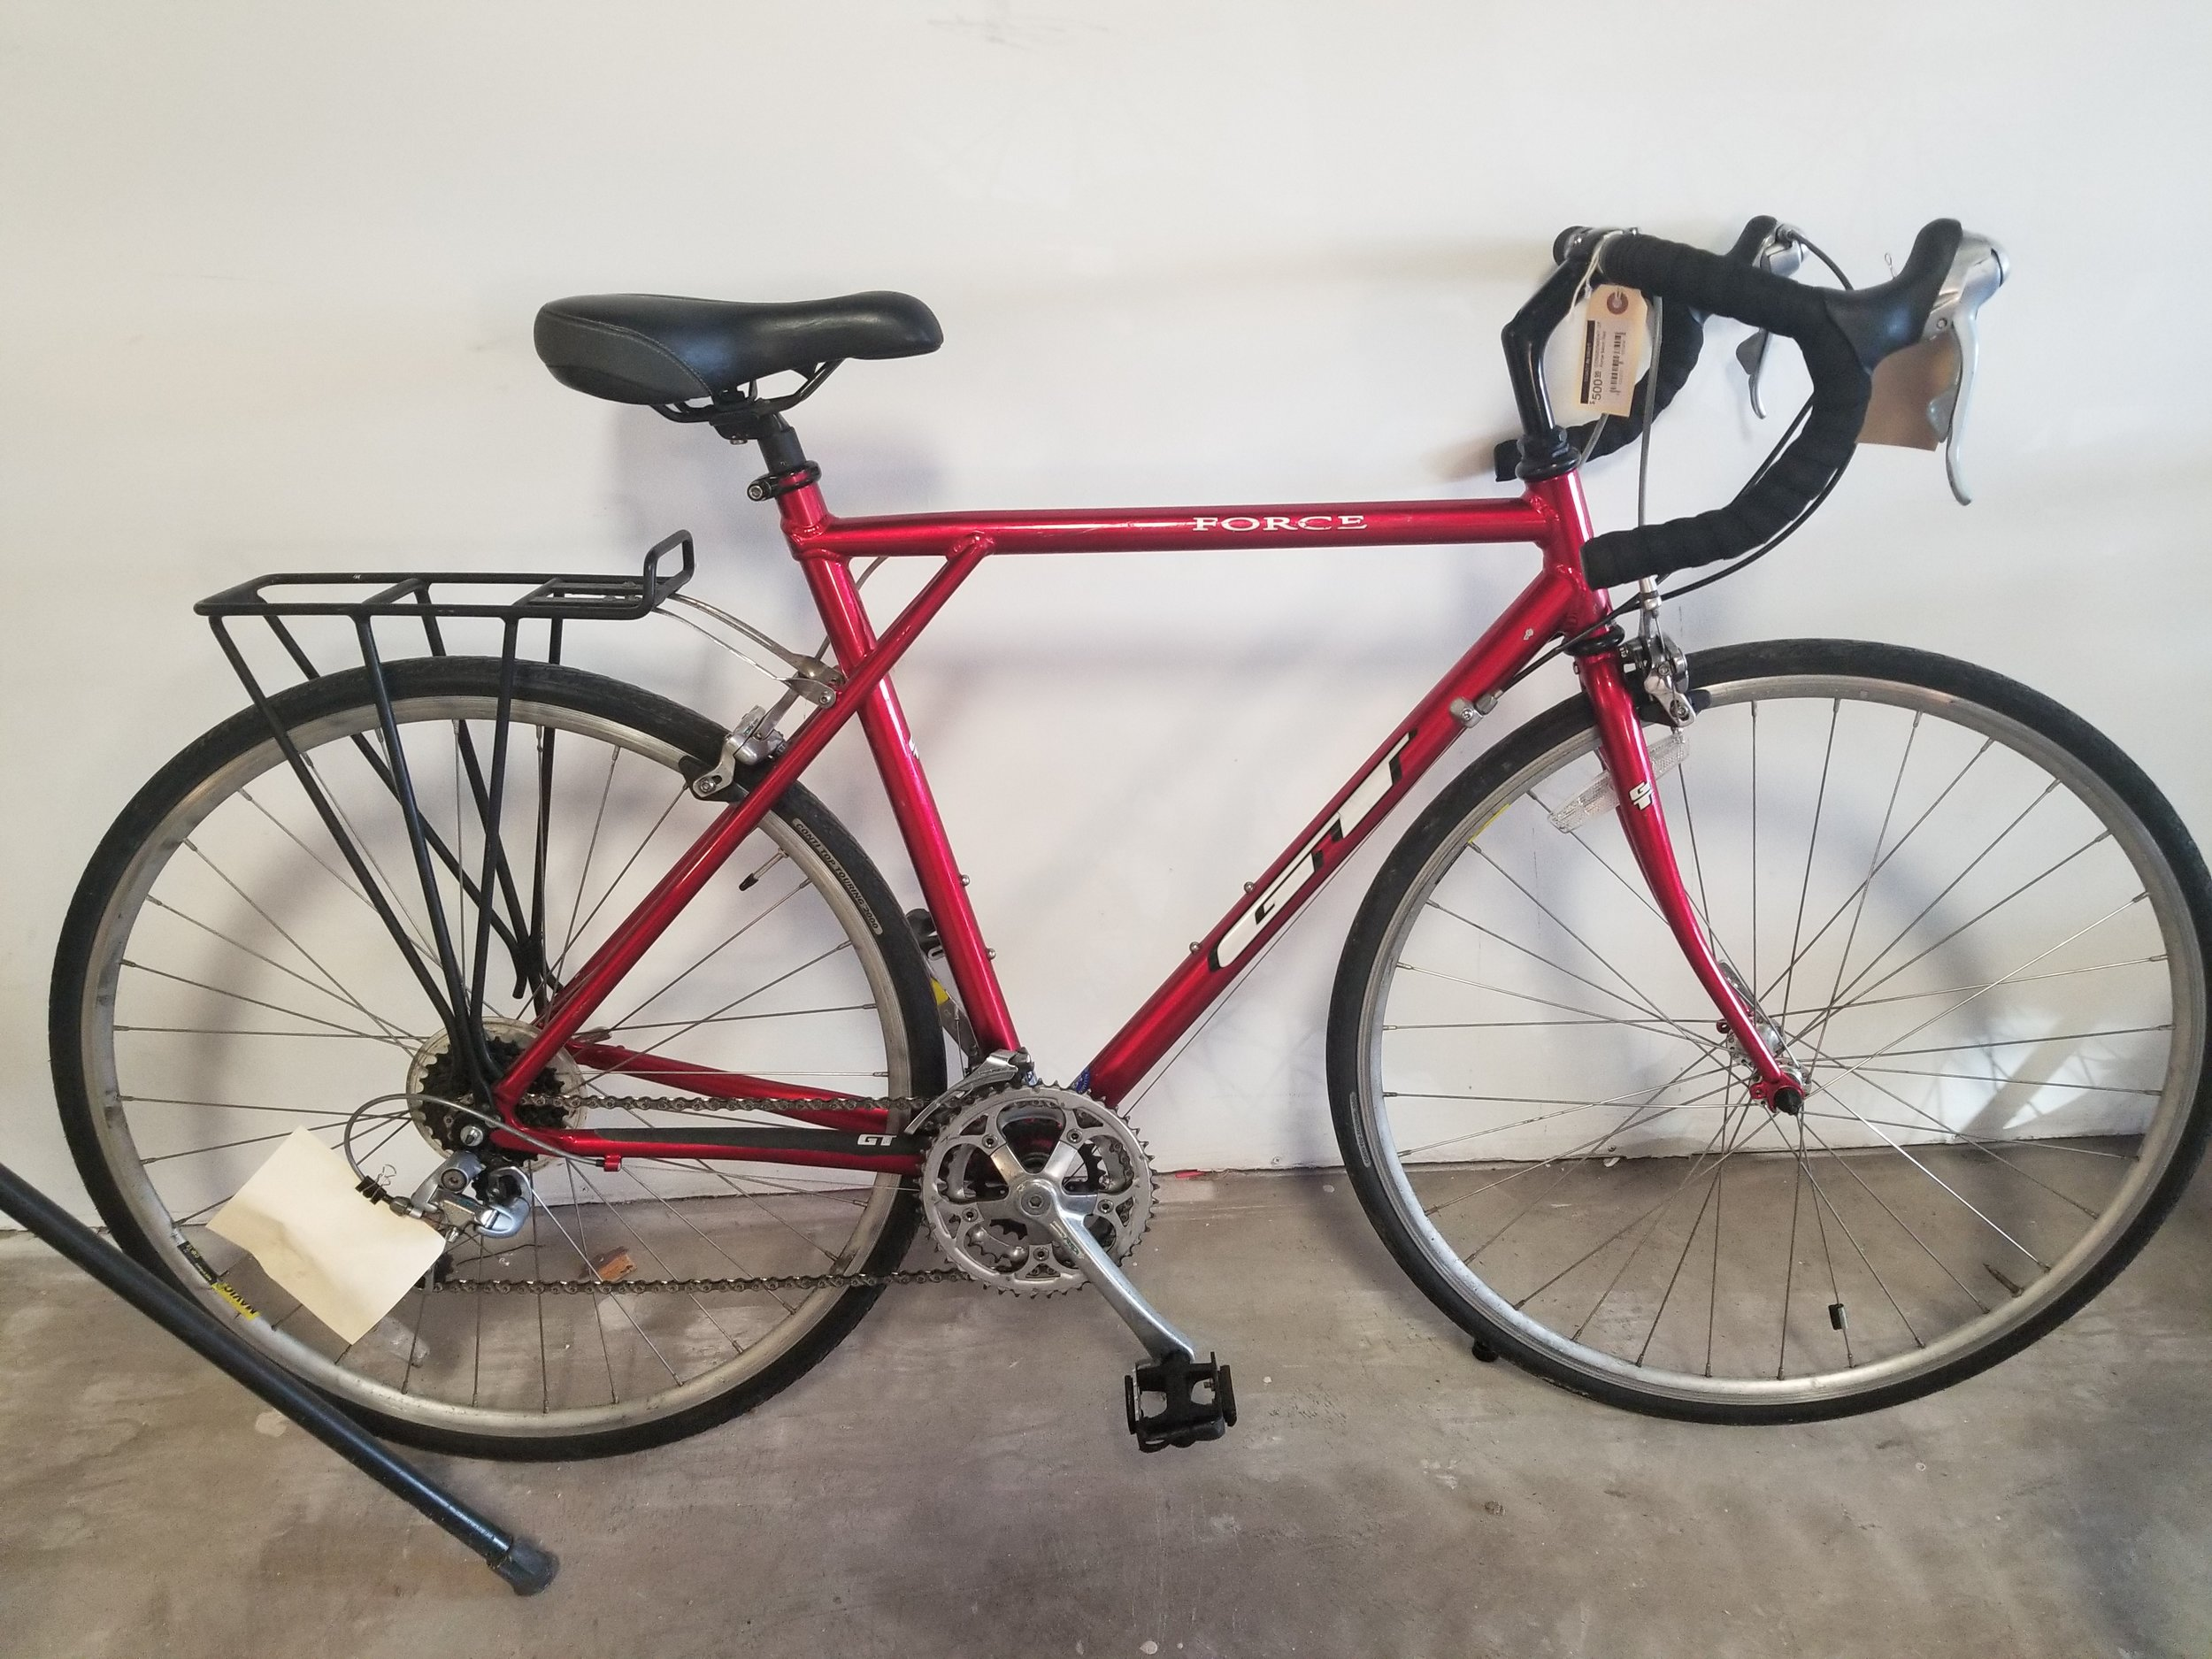 gt force road bike 54cm - Consignment bike. Tuned-up and new bar tape. Includes rear rack. STI shifters and 2x8 drivetrain.$450 (was %4